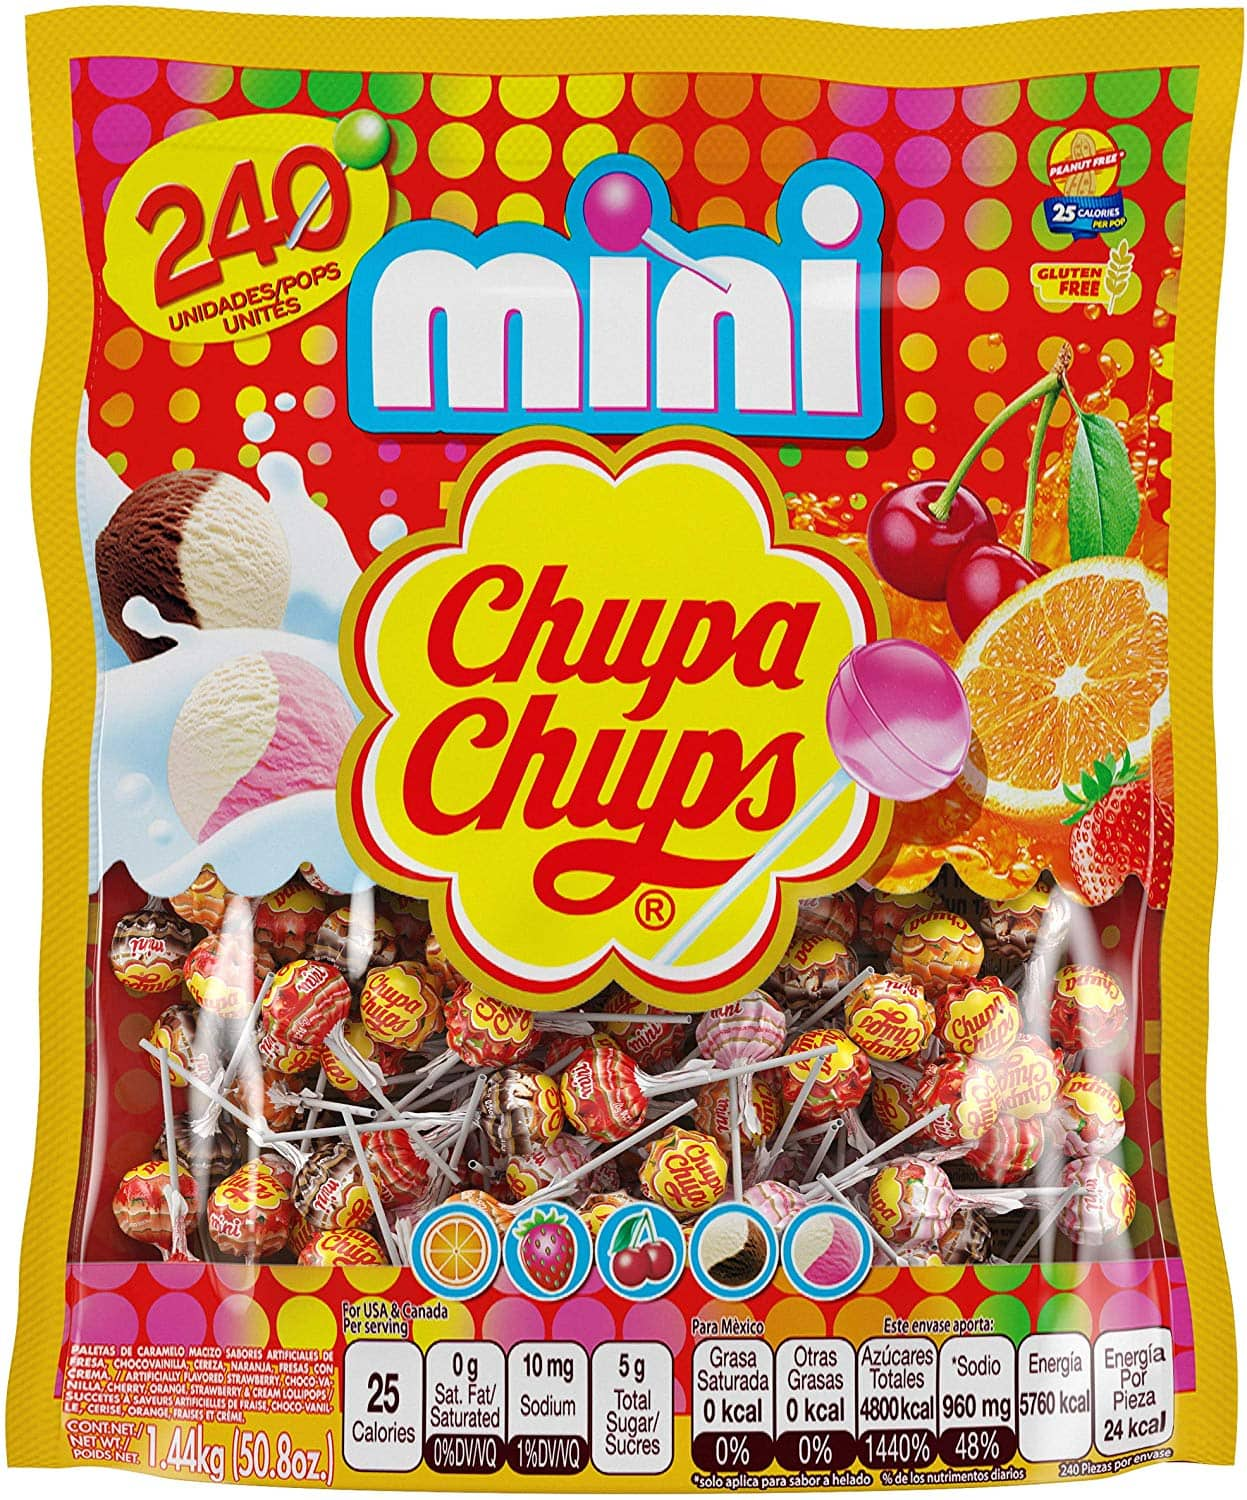 Chupa Chups Mini Lollipops 240ct $9.79 after coupon and S&S @ Amazon